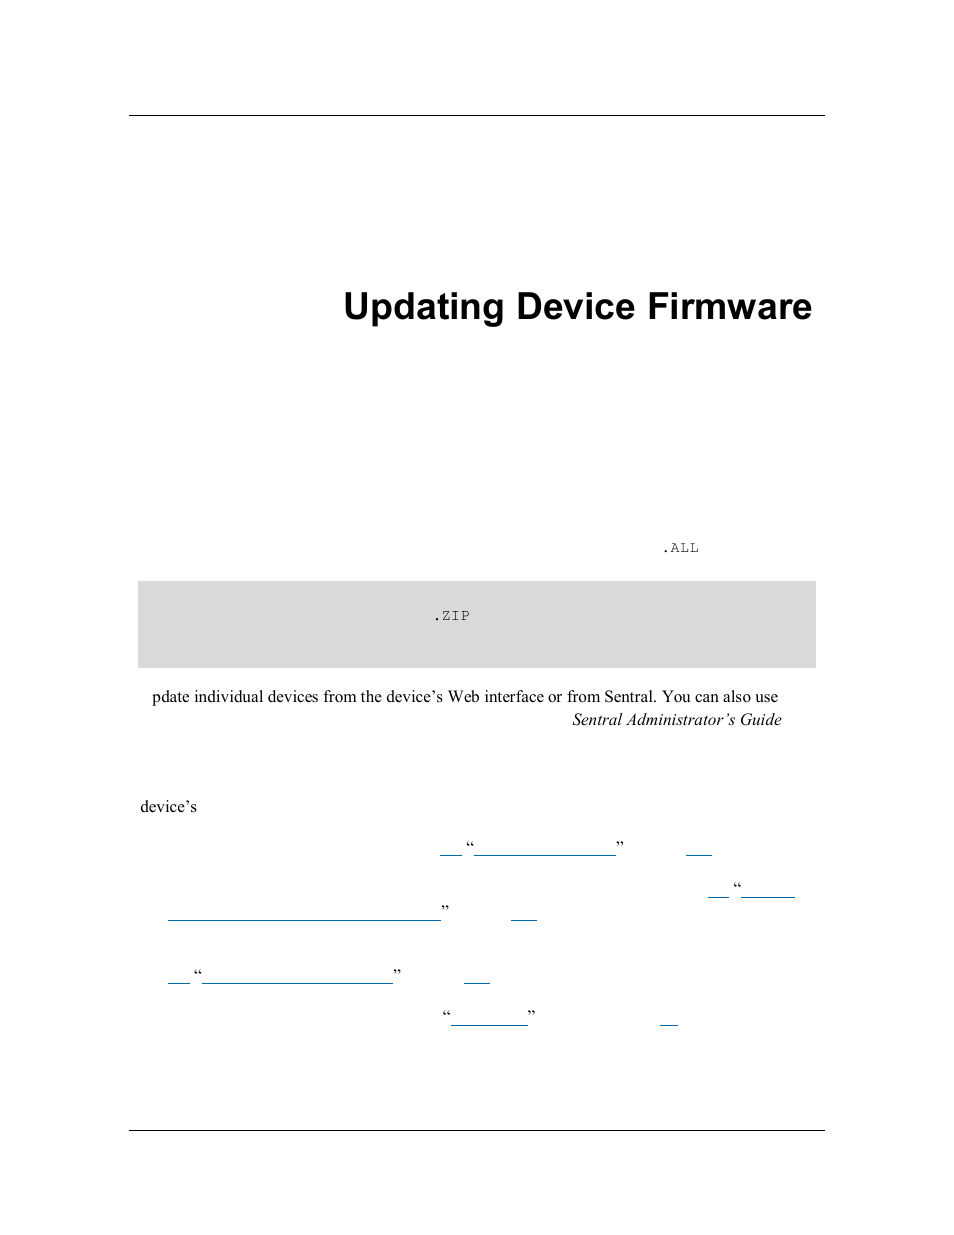 Chapter 9  updating device firmware, Chapter 9, Updating